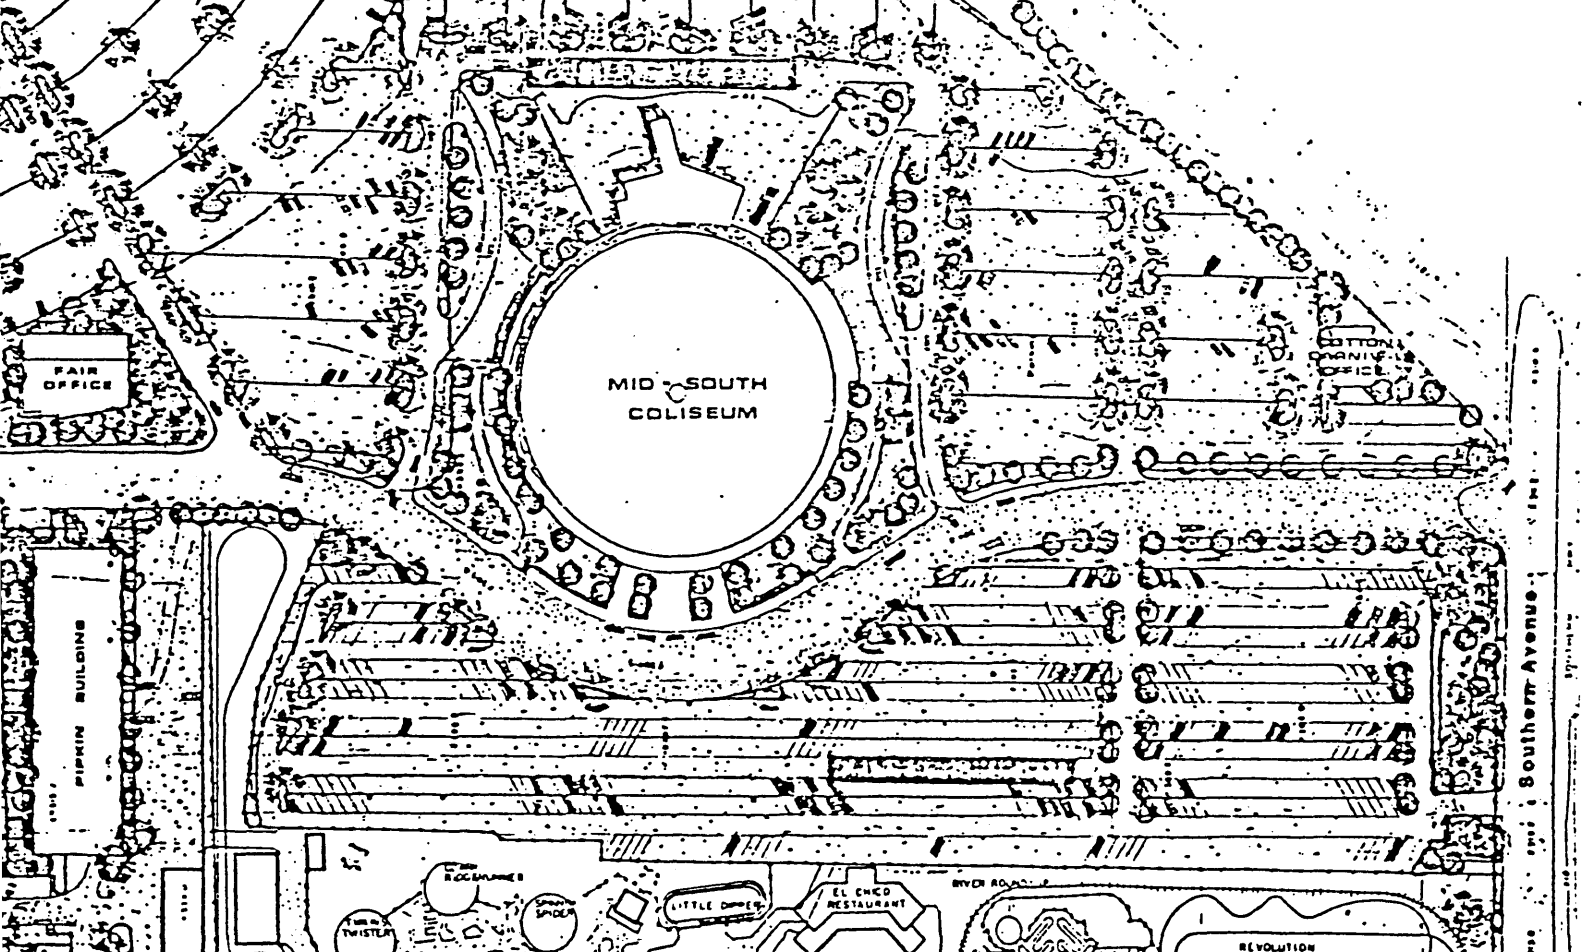 SIte plan for the Mid-South Coliseum